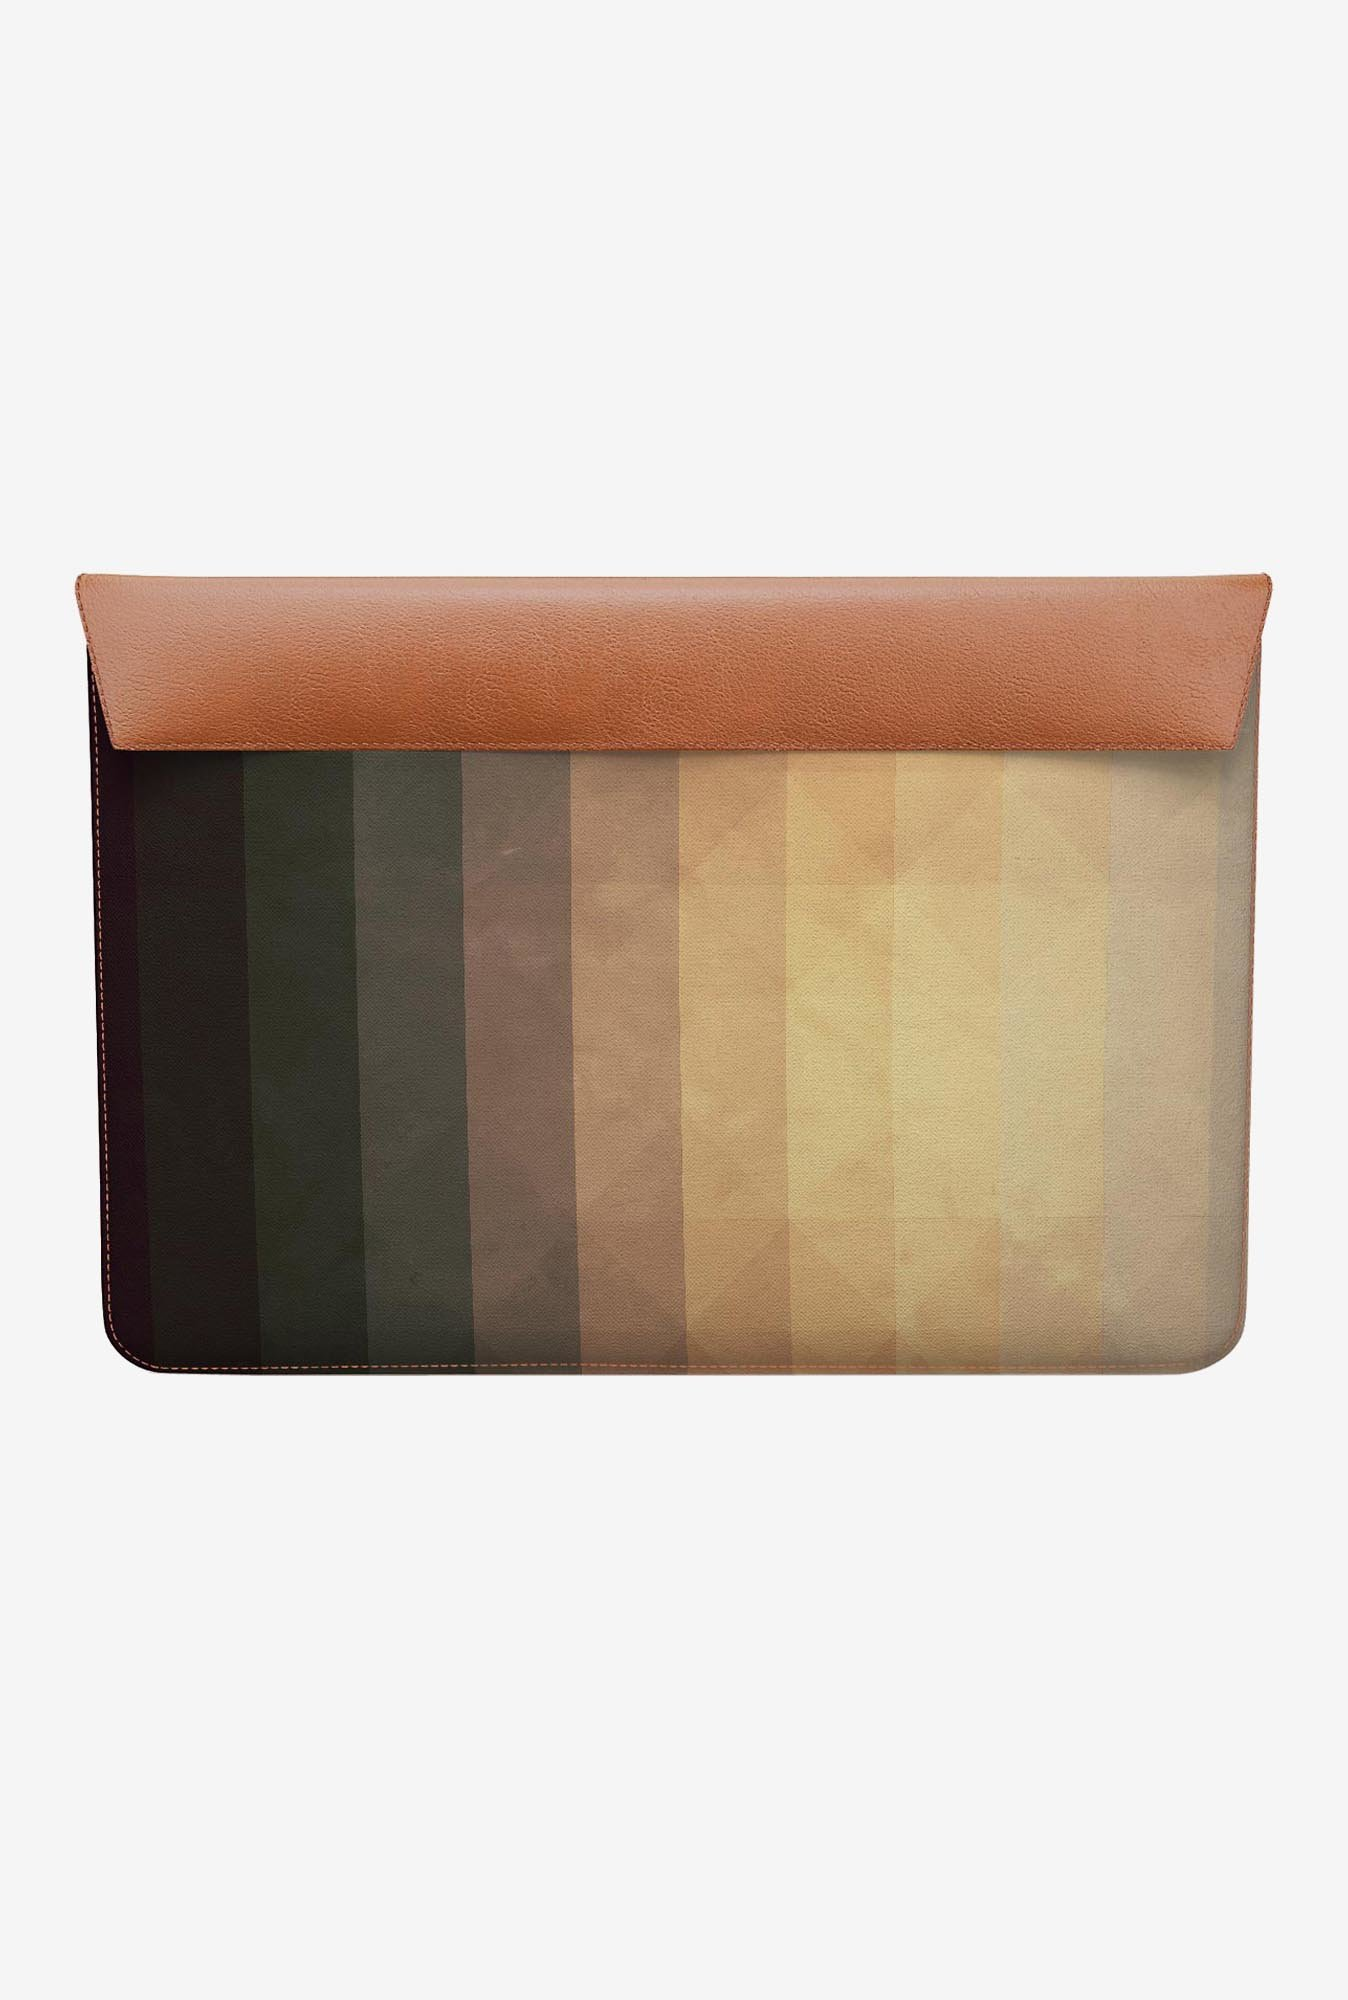 "DailyObjects Hyrd Tyme Macbook Air 11"" Envelope Sleeve"